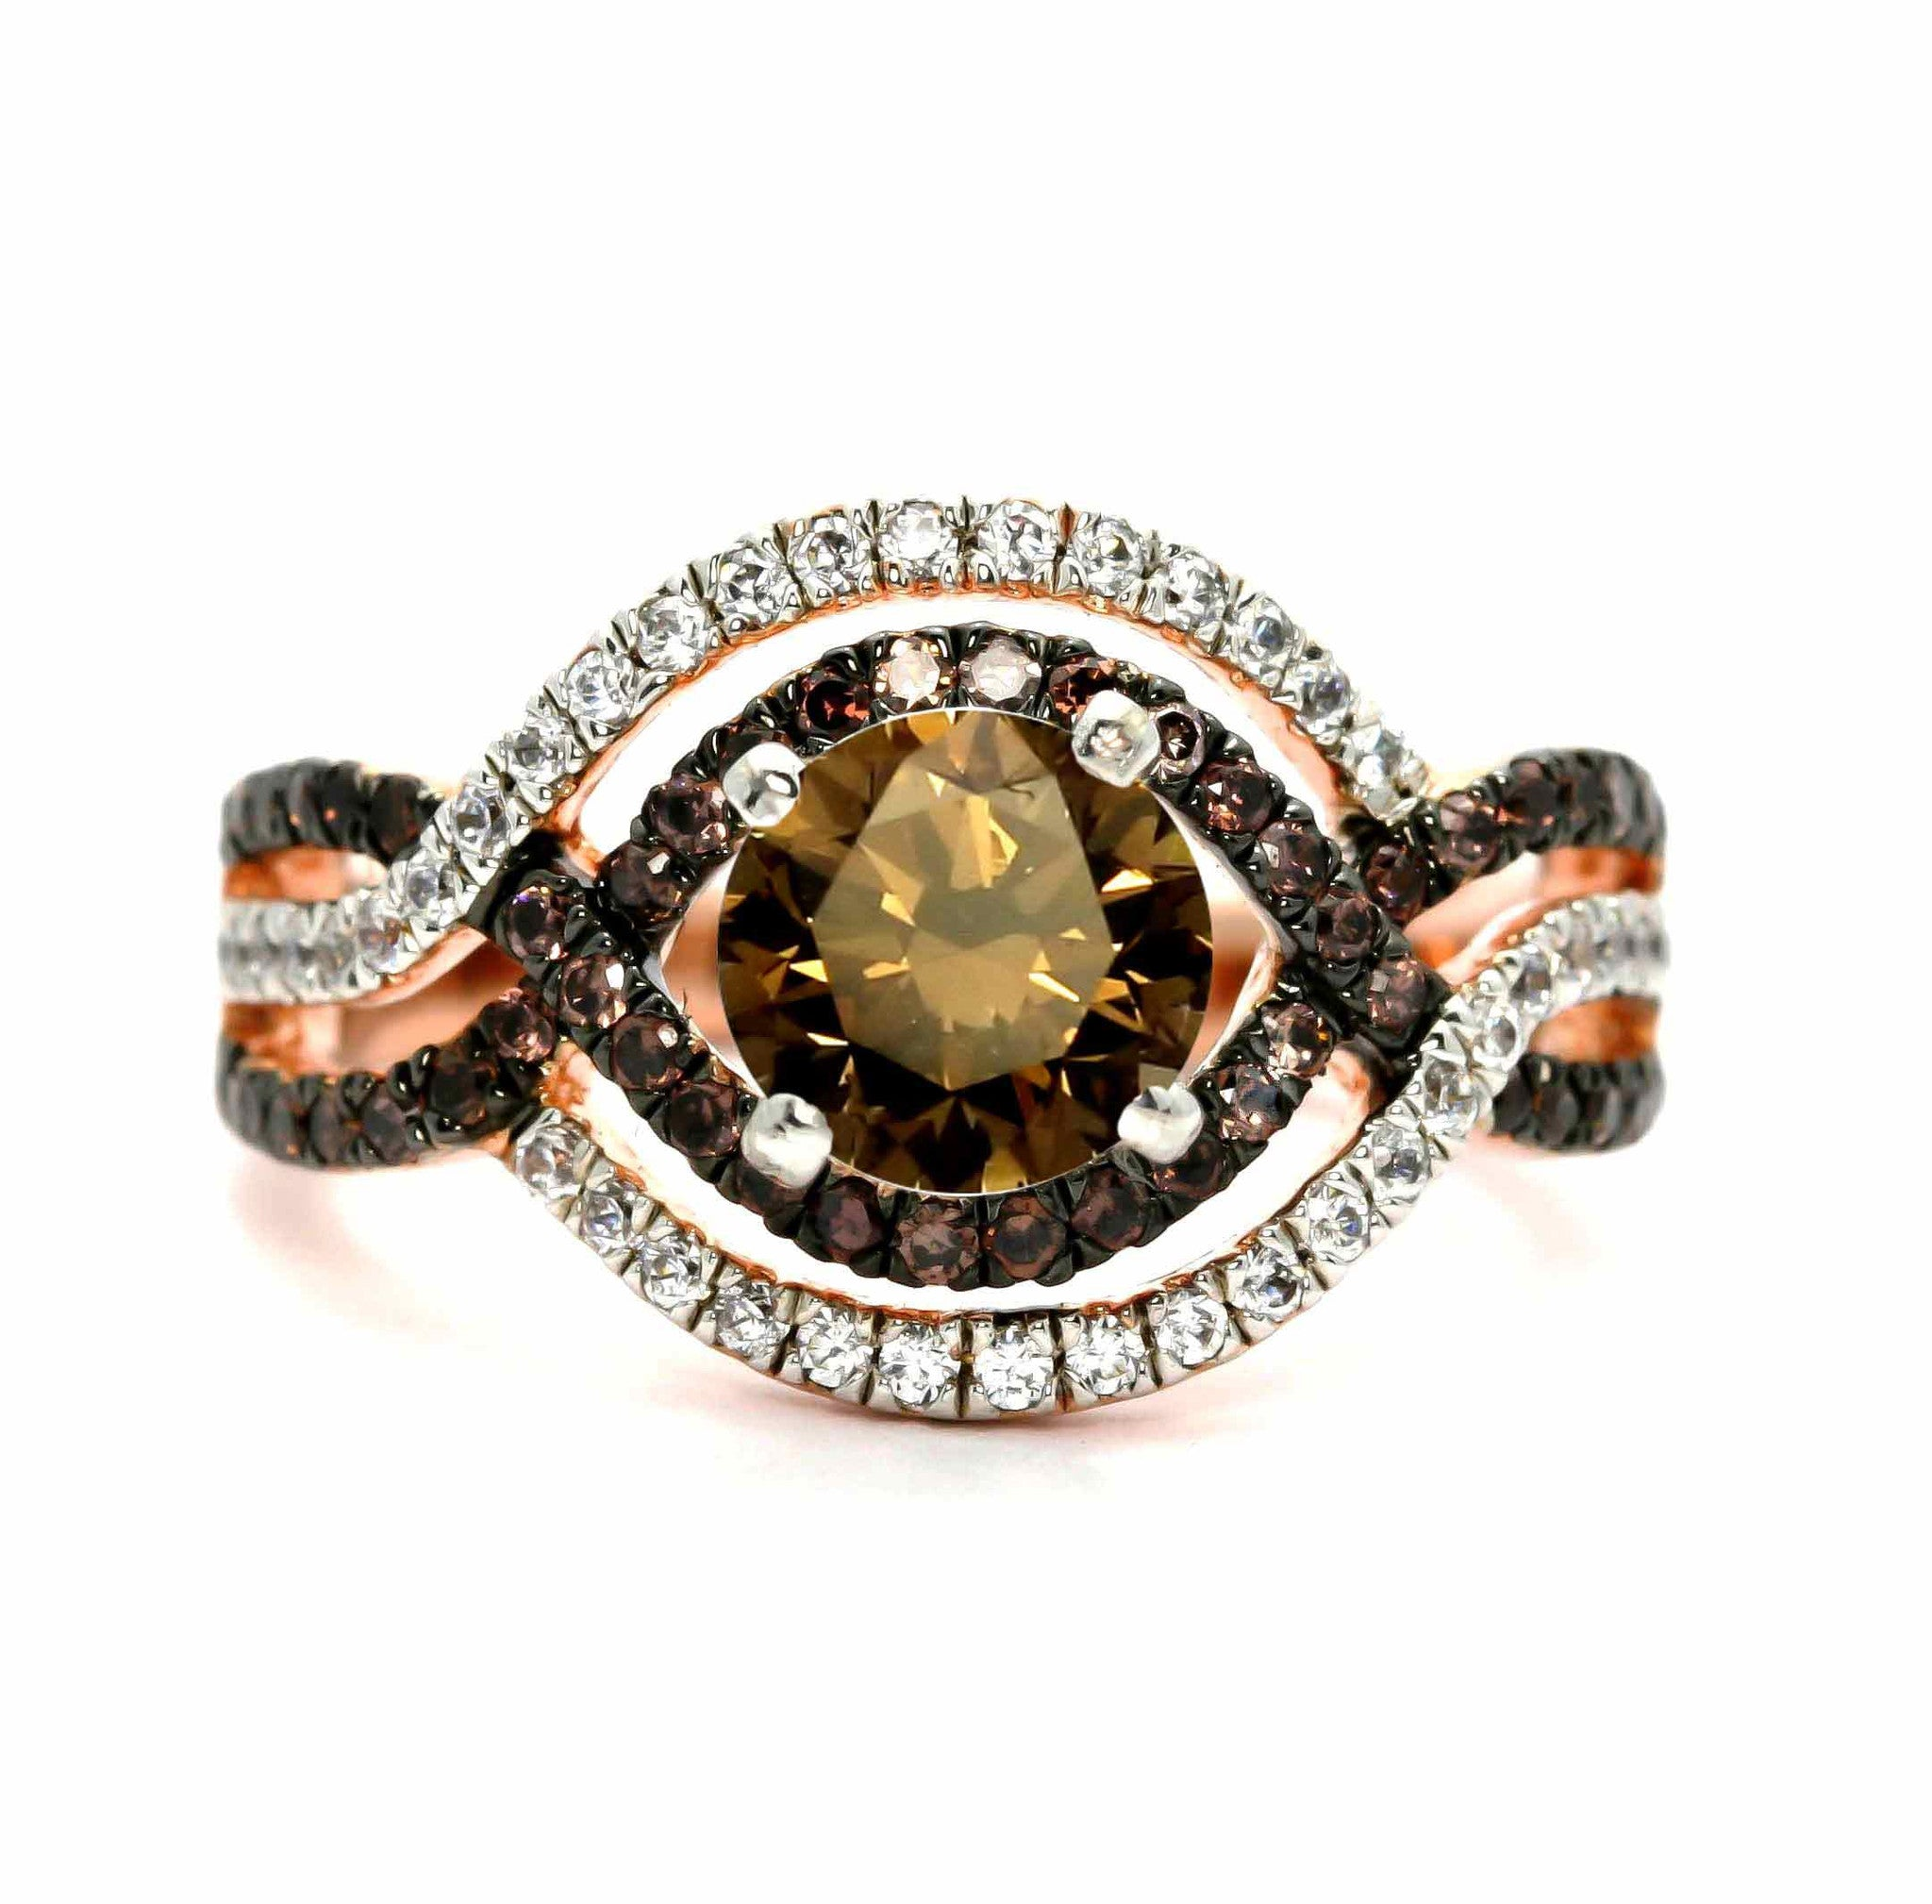 Unique Halo Infinity 1 Carat Fancy Brown Diamond Engagement Ring with Rose Gold, White & Brown Diamond Accent Stones, Anniversary Ring - BD94616